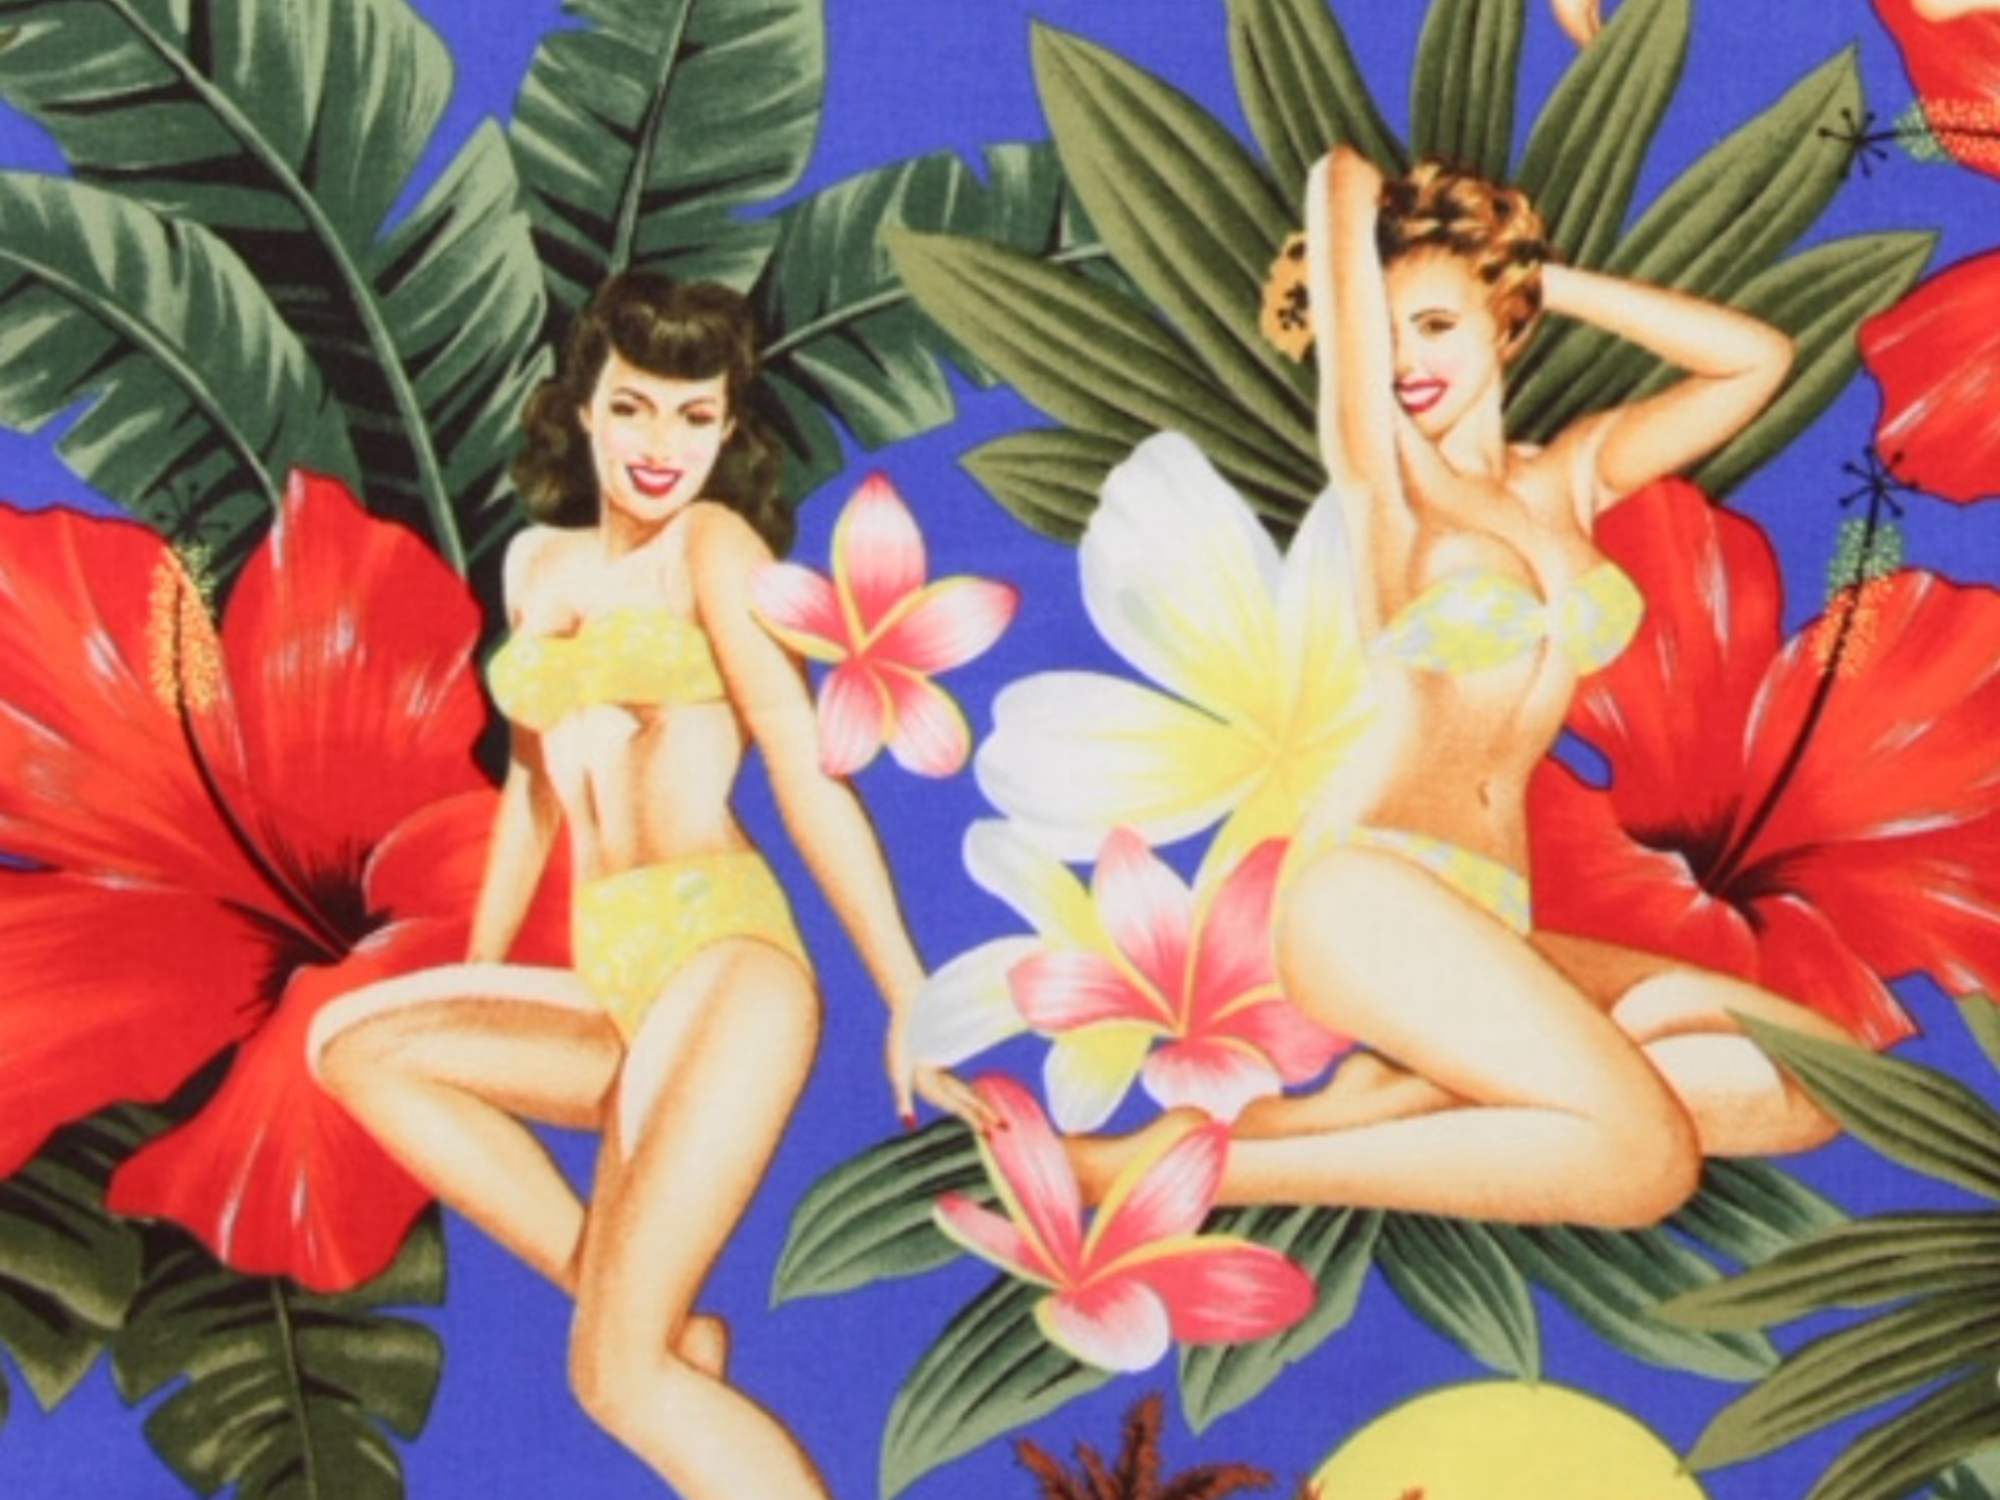 COMING SOON! Sexy Pin Up Girls Island Girls Retro Hawaii Hula Luau Tiki Bar Alexander Henry Cotton Quilt Fabric